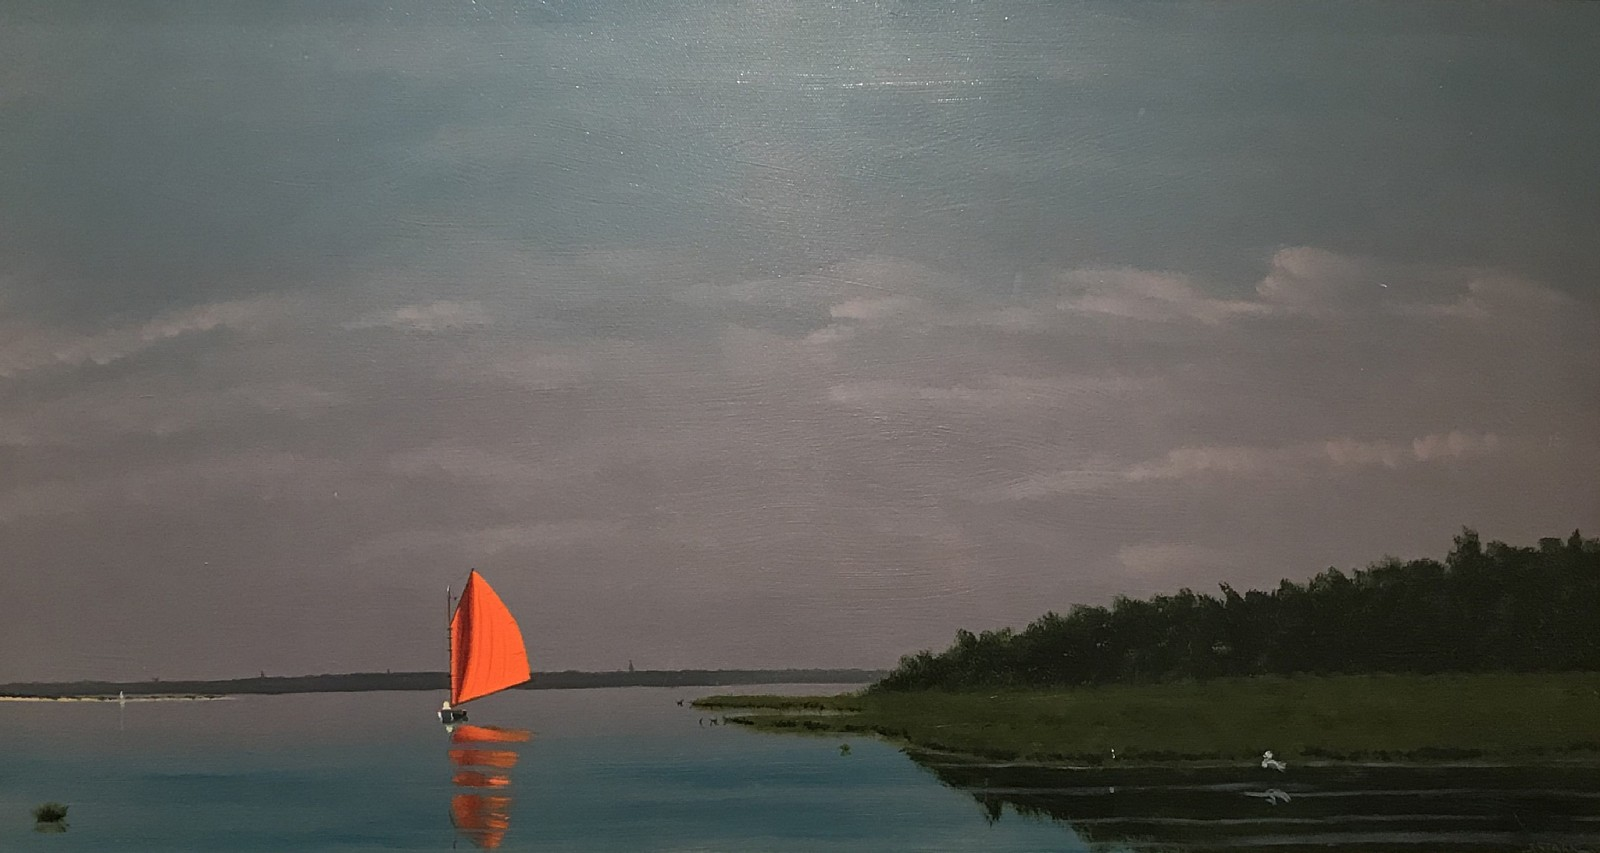 Robert Stark ,   Red Sail, Polpis      oil on canvas ,  15 x 30 in. (38.1 x 76.2 cm)     RS190601